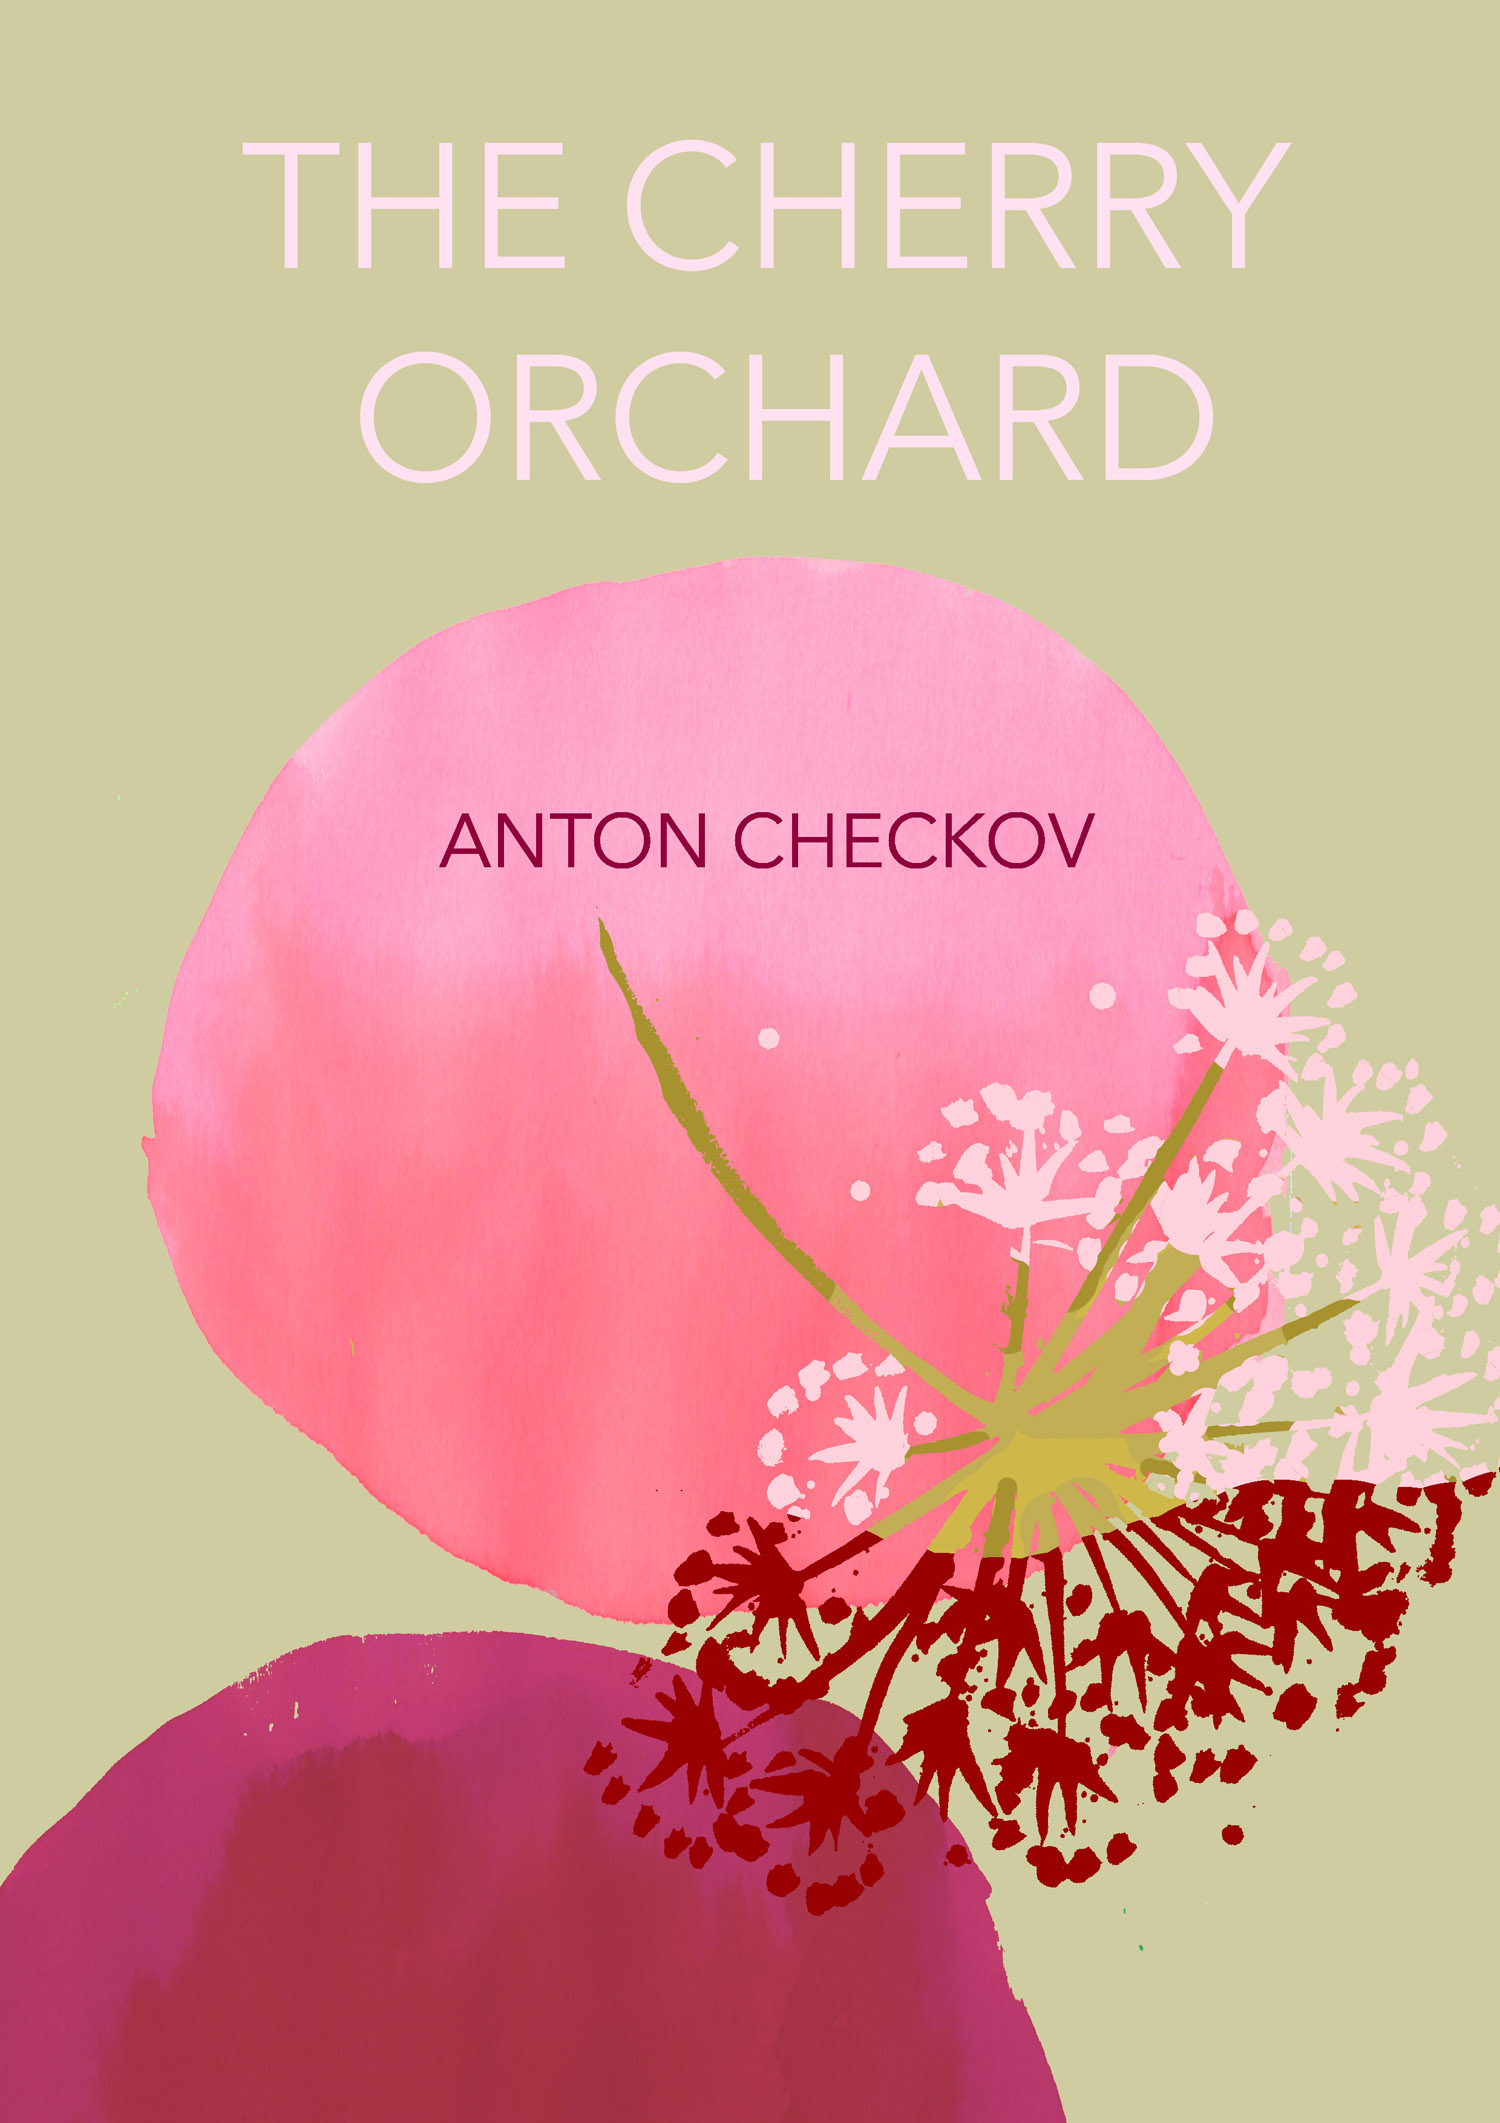 The cherry orchard- cover illustration